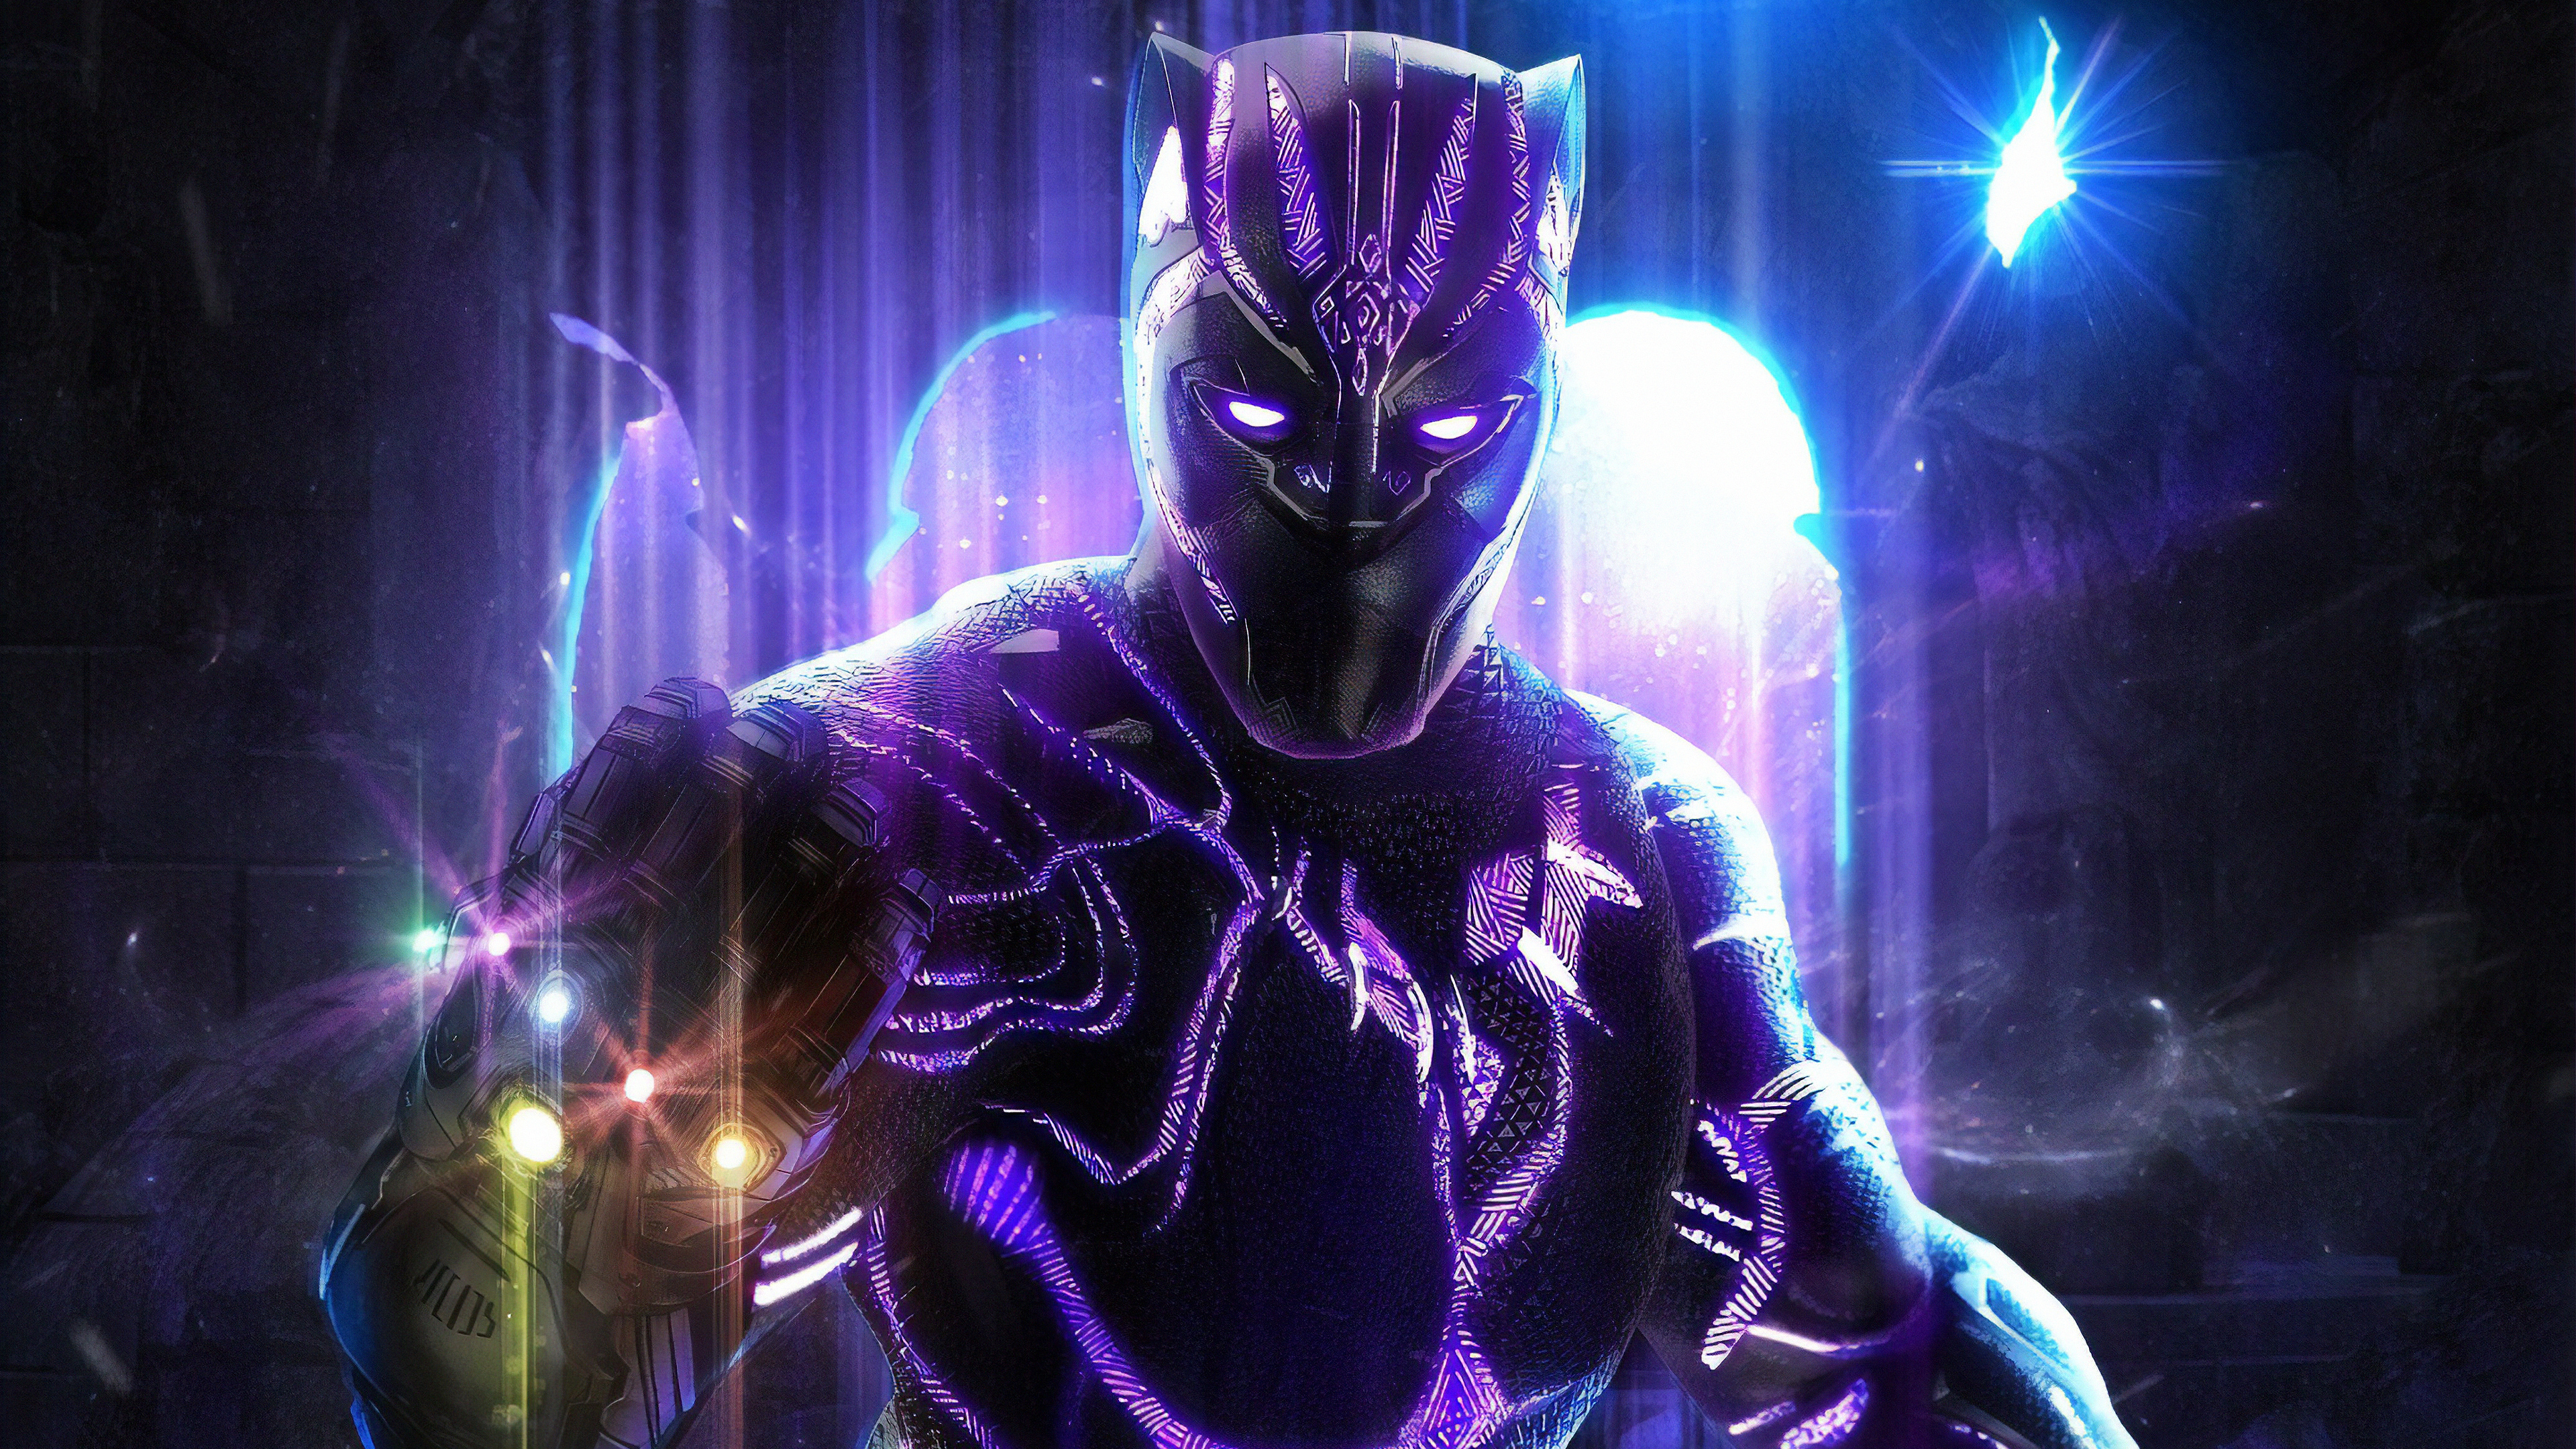 Wallpaper 4k Black Panther With Infinity Gauntlet 4k Wallpapers Artwork Wallpapers Black Panther Wallpapers Digital Art Wallpapers Hd Wallpapers Superheroes Wallpapers